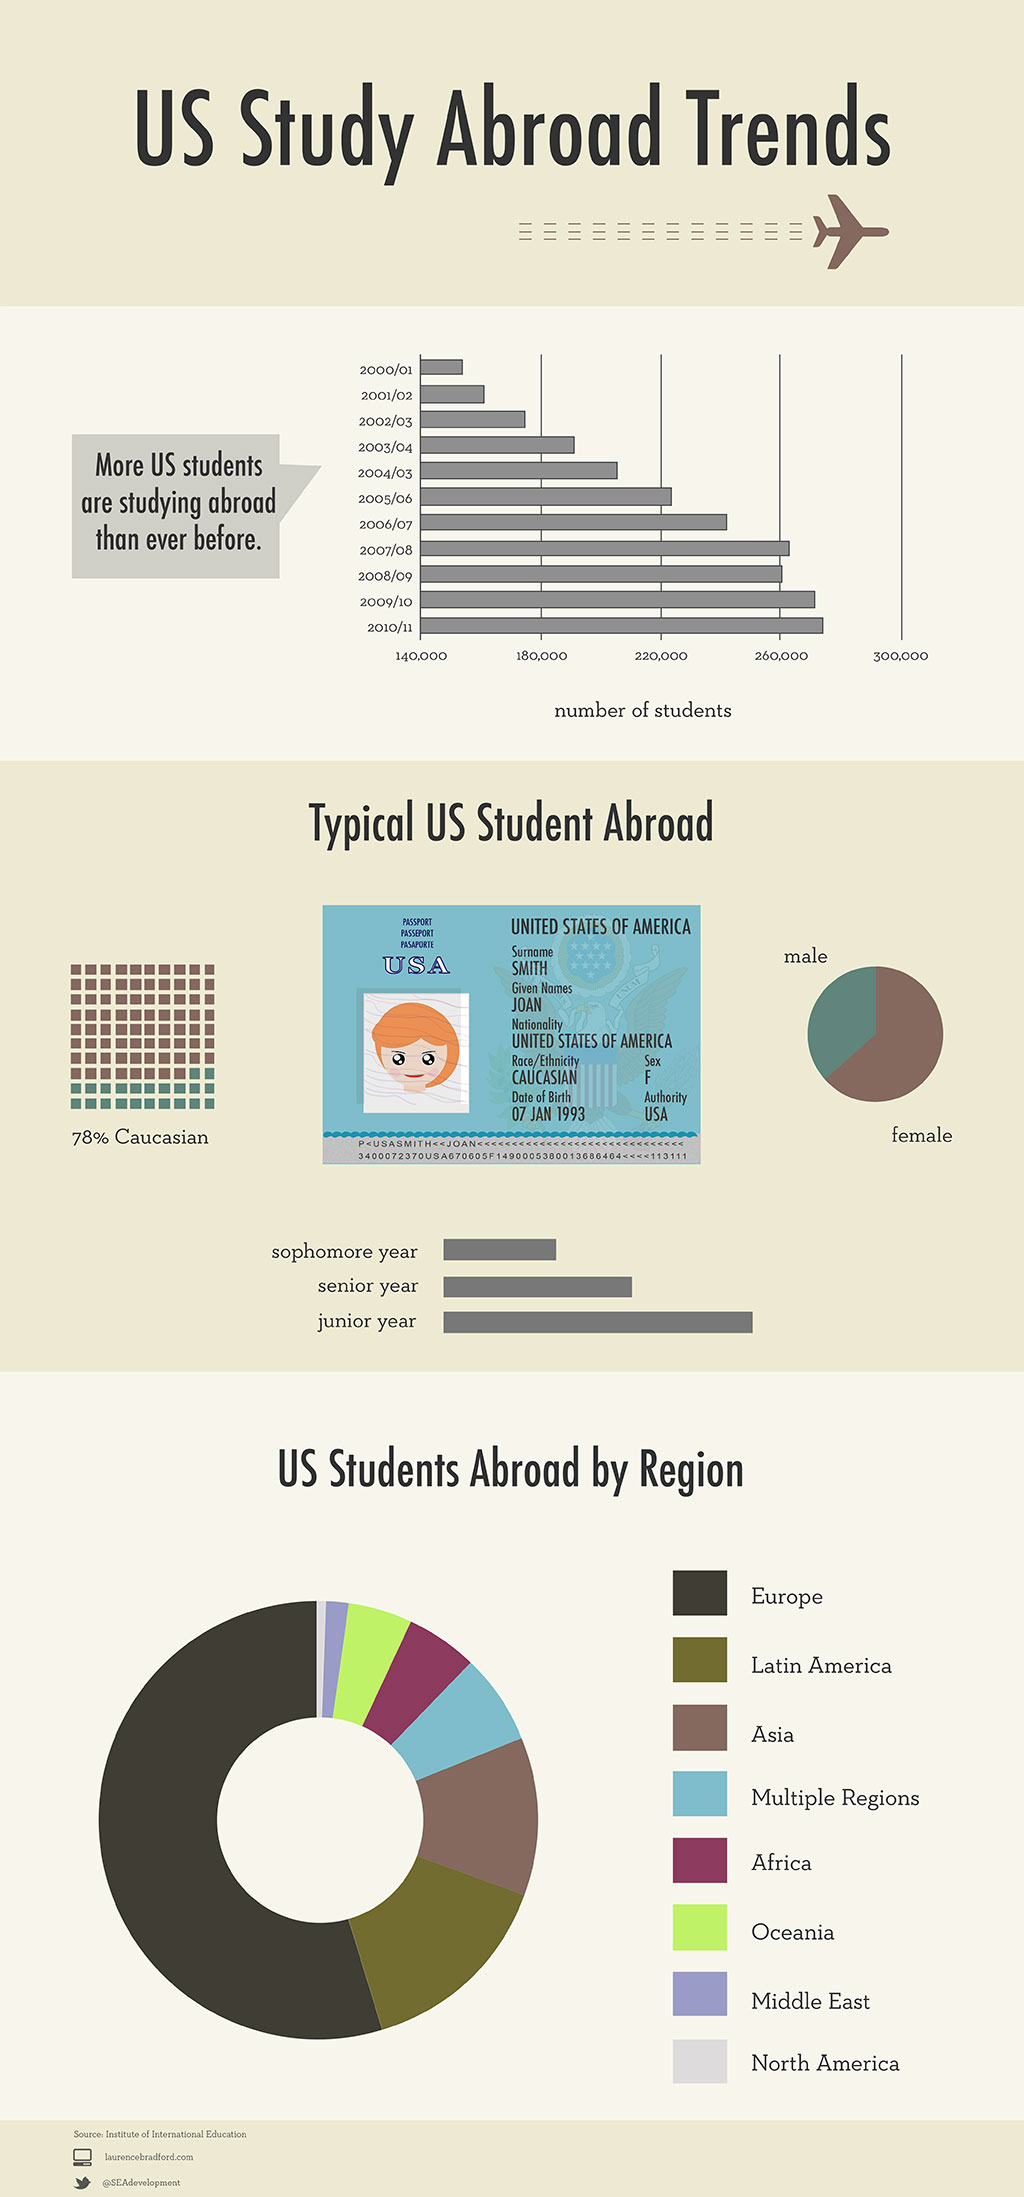 US Study Abroad Trends